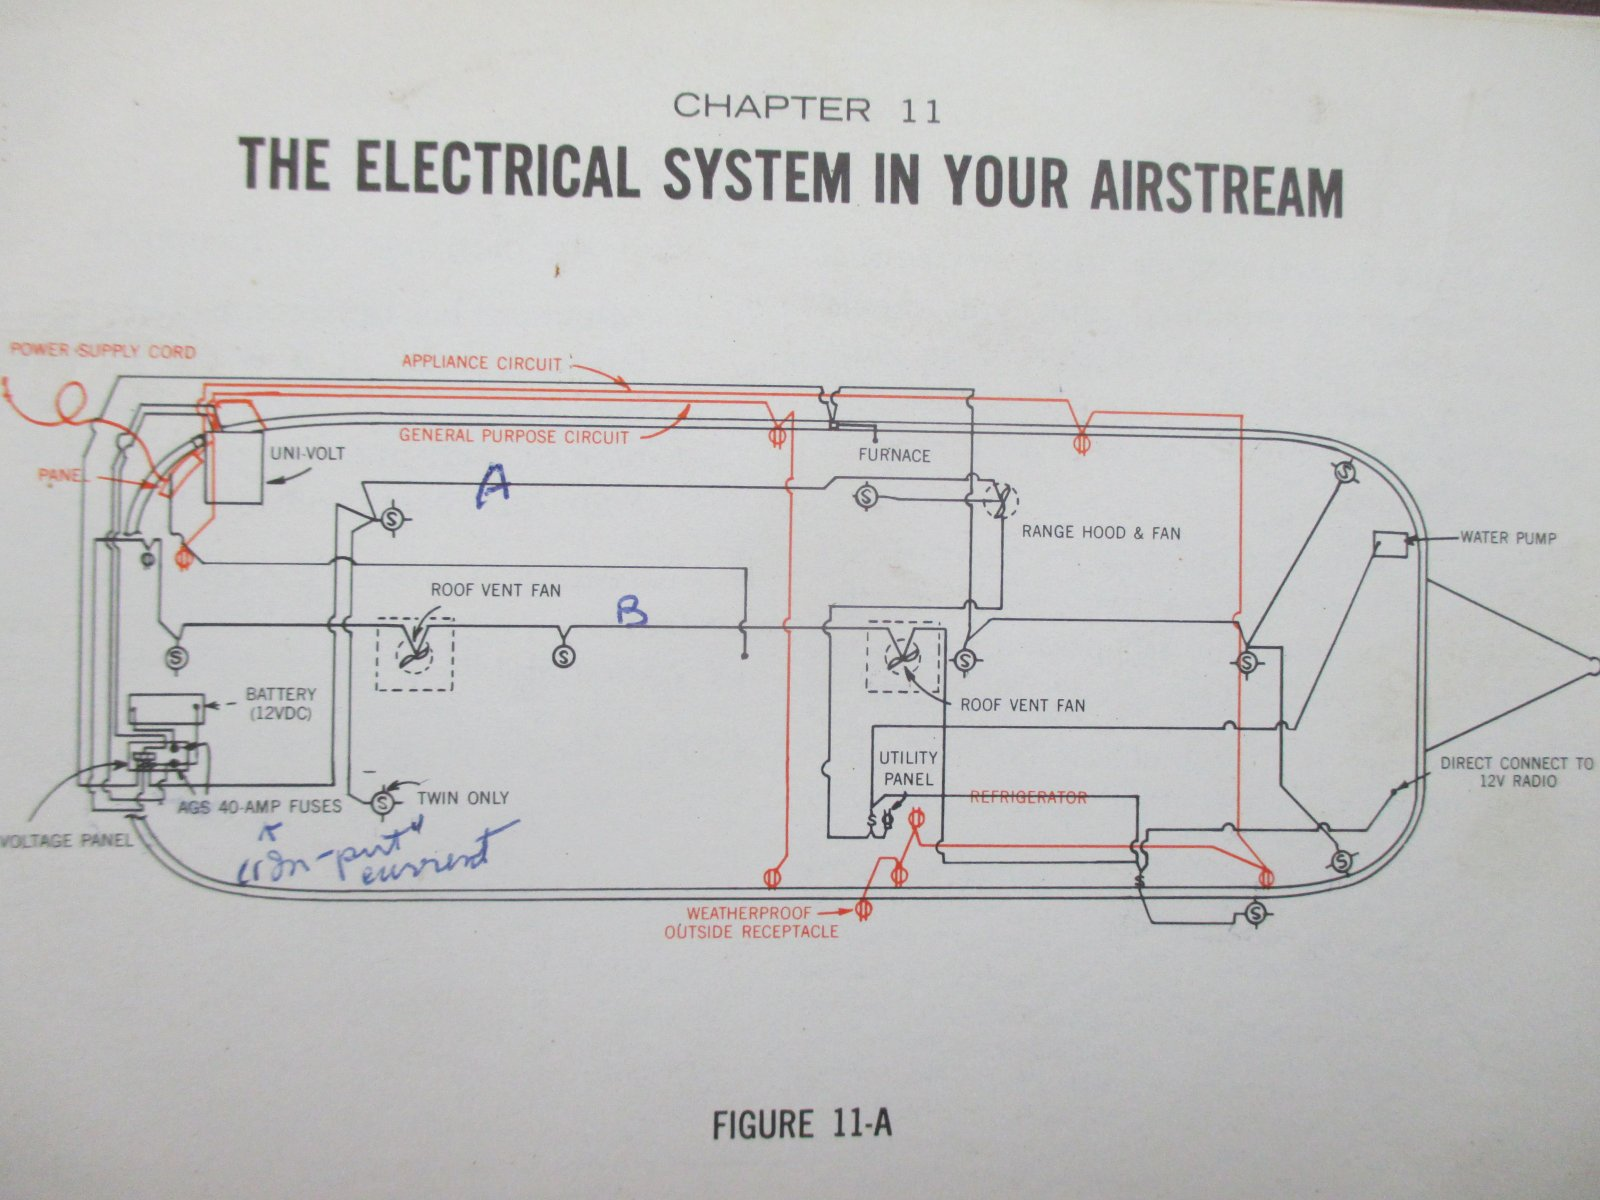 12 volt wiring diagram for 1966 airstream gallery